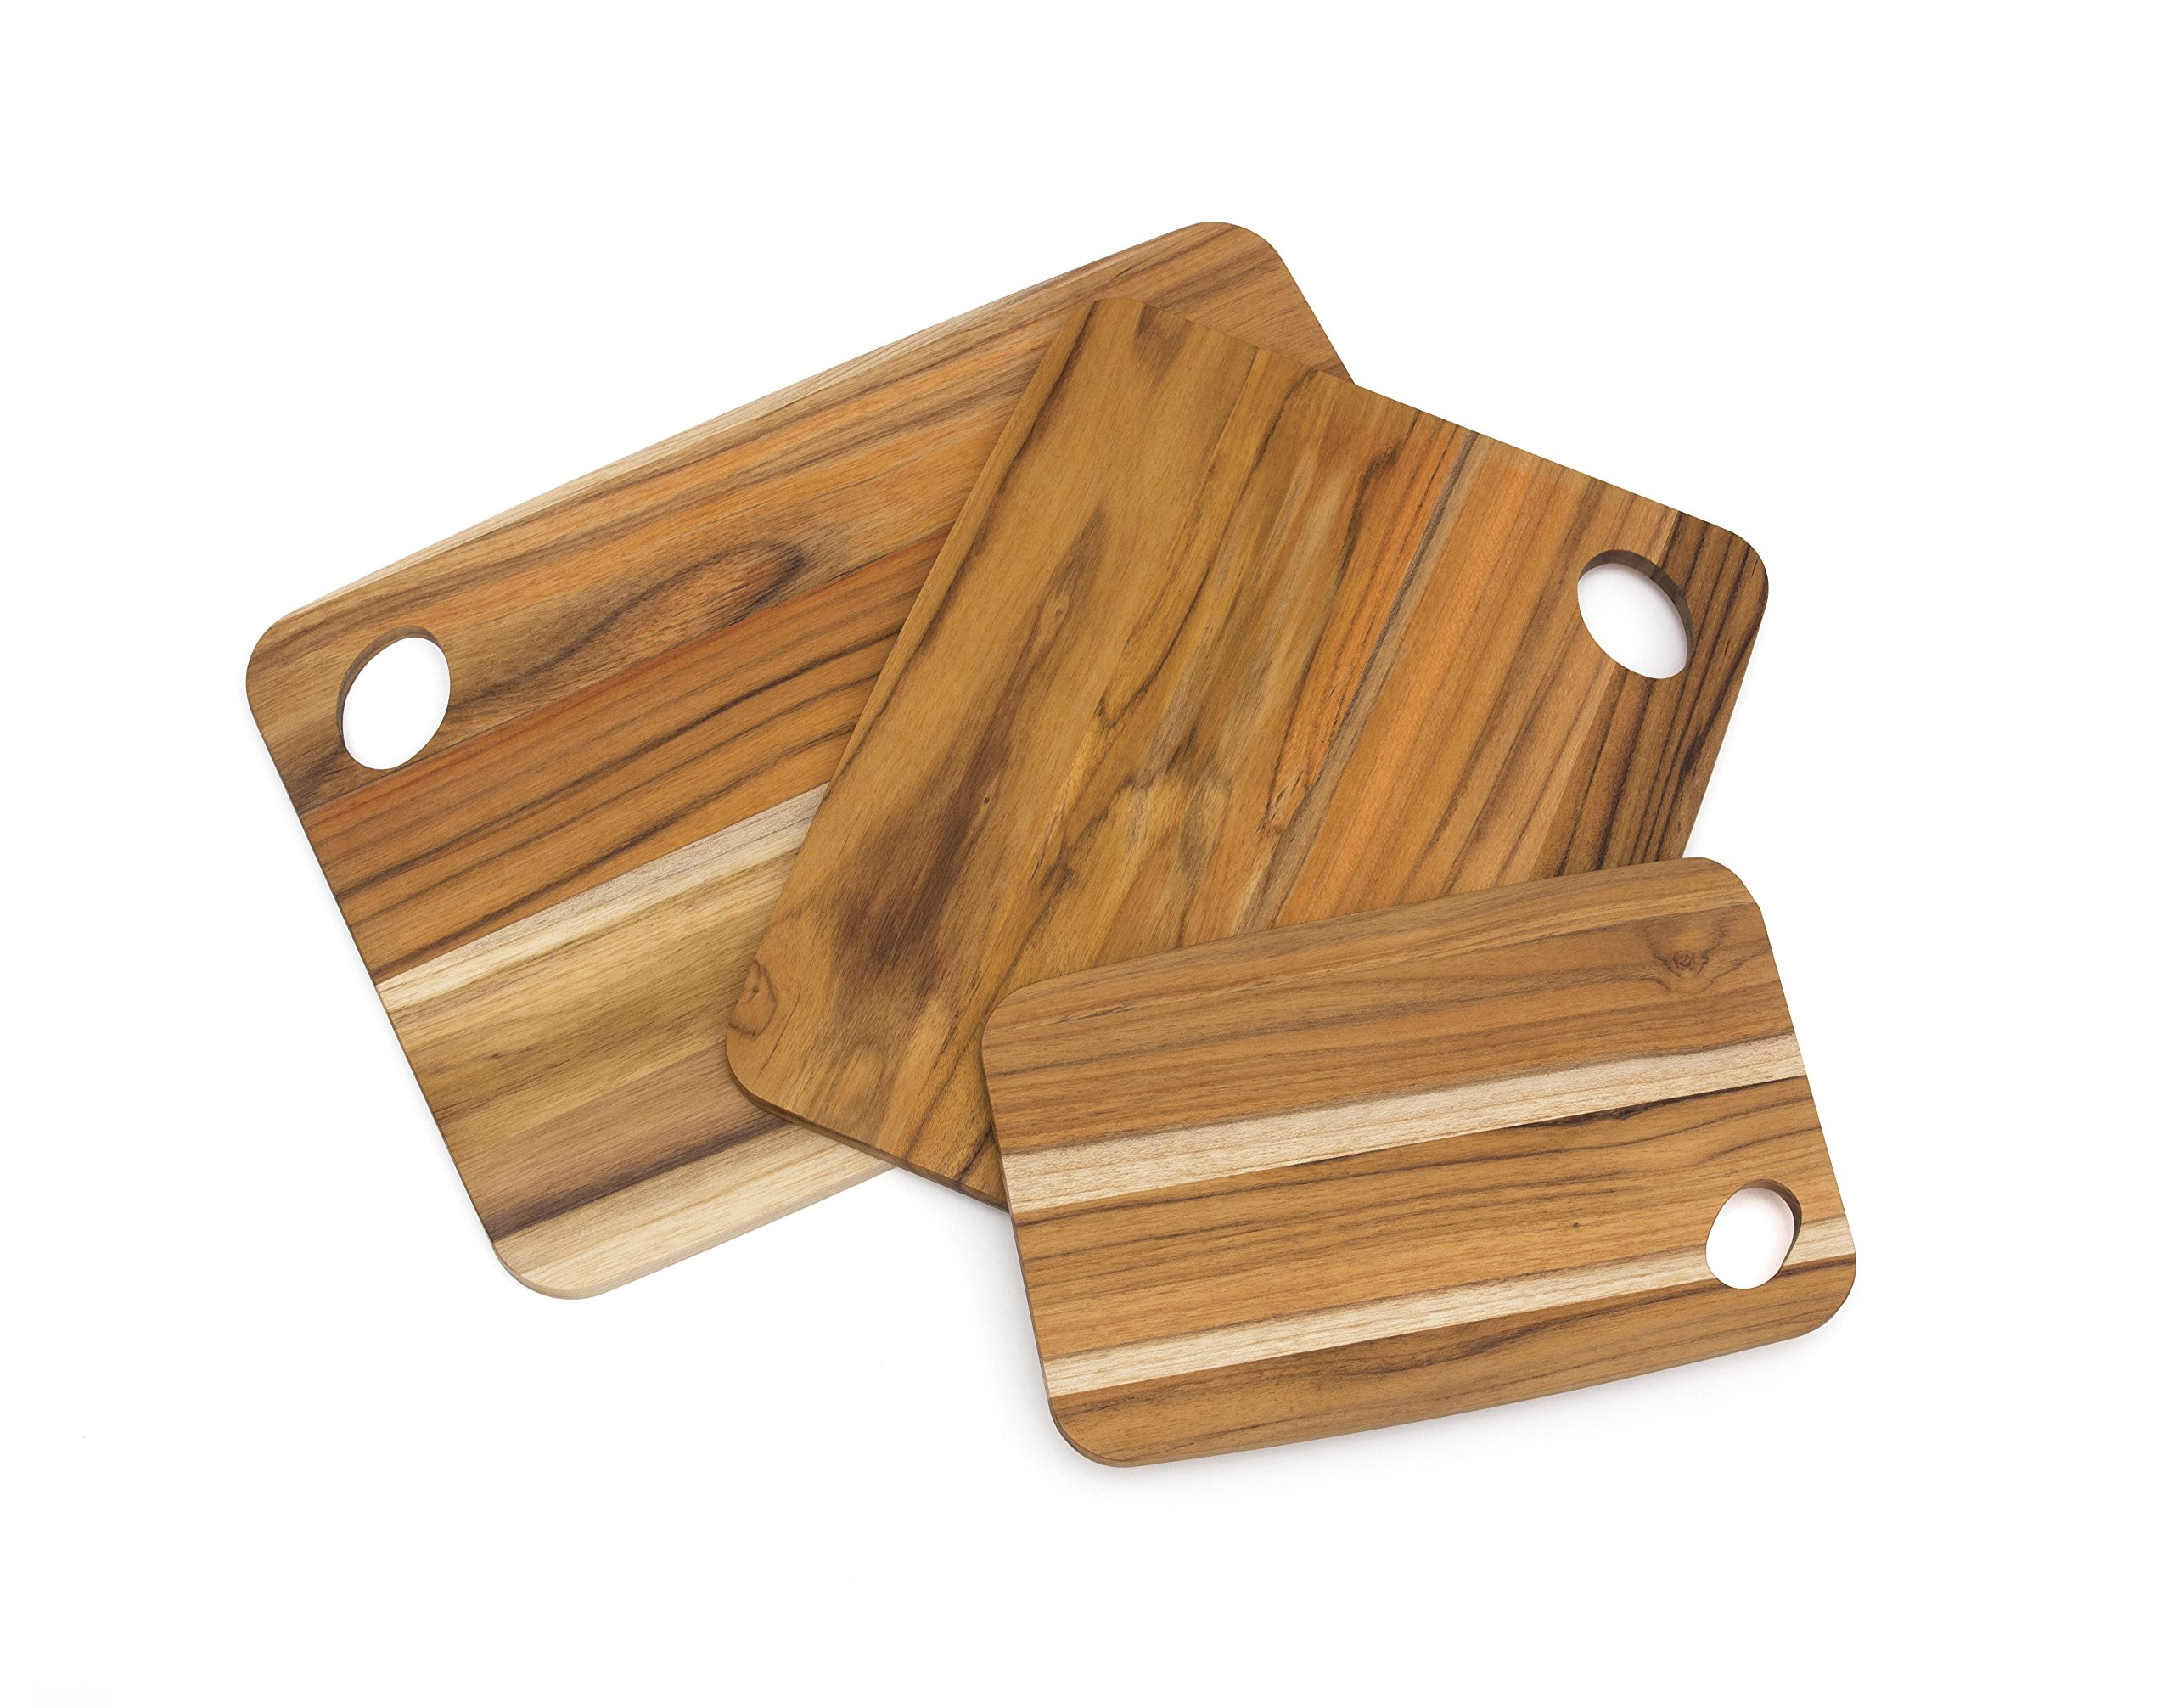 Lipper International 7239 Teak Wood Cutting Boards with Oval Holes in Corners, Assorted Sizes, Set of 3